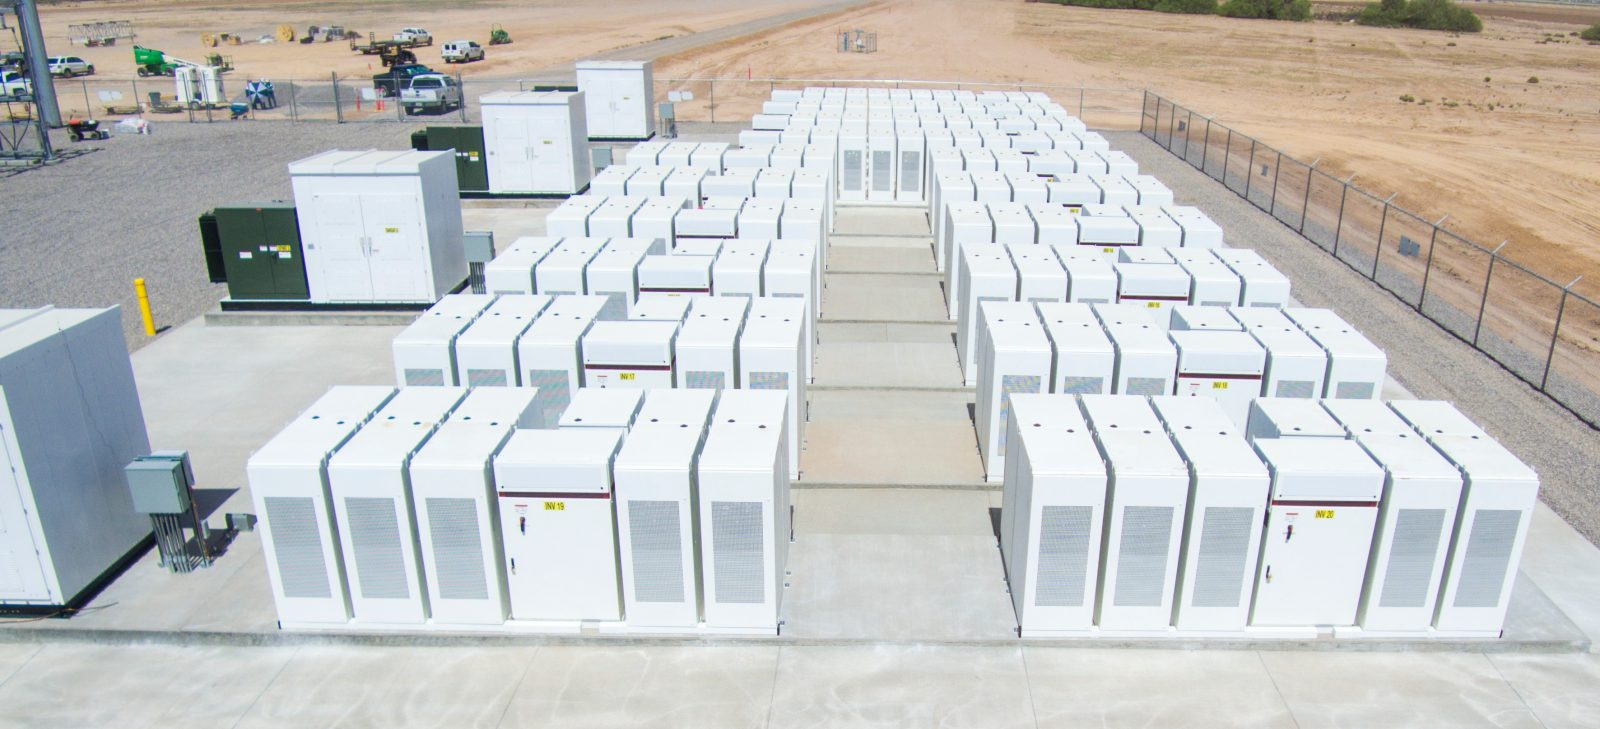 US battery storage projects on the rise, utility-scale capacity could triple by 2023